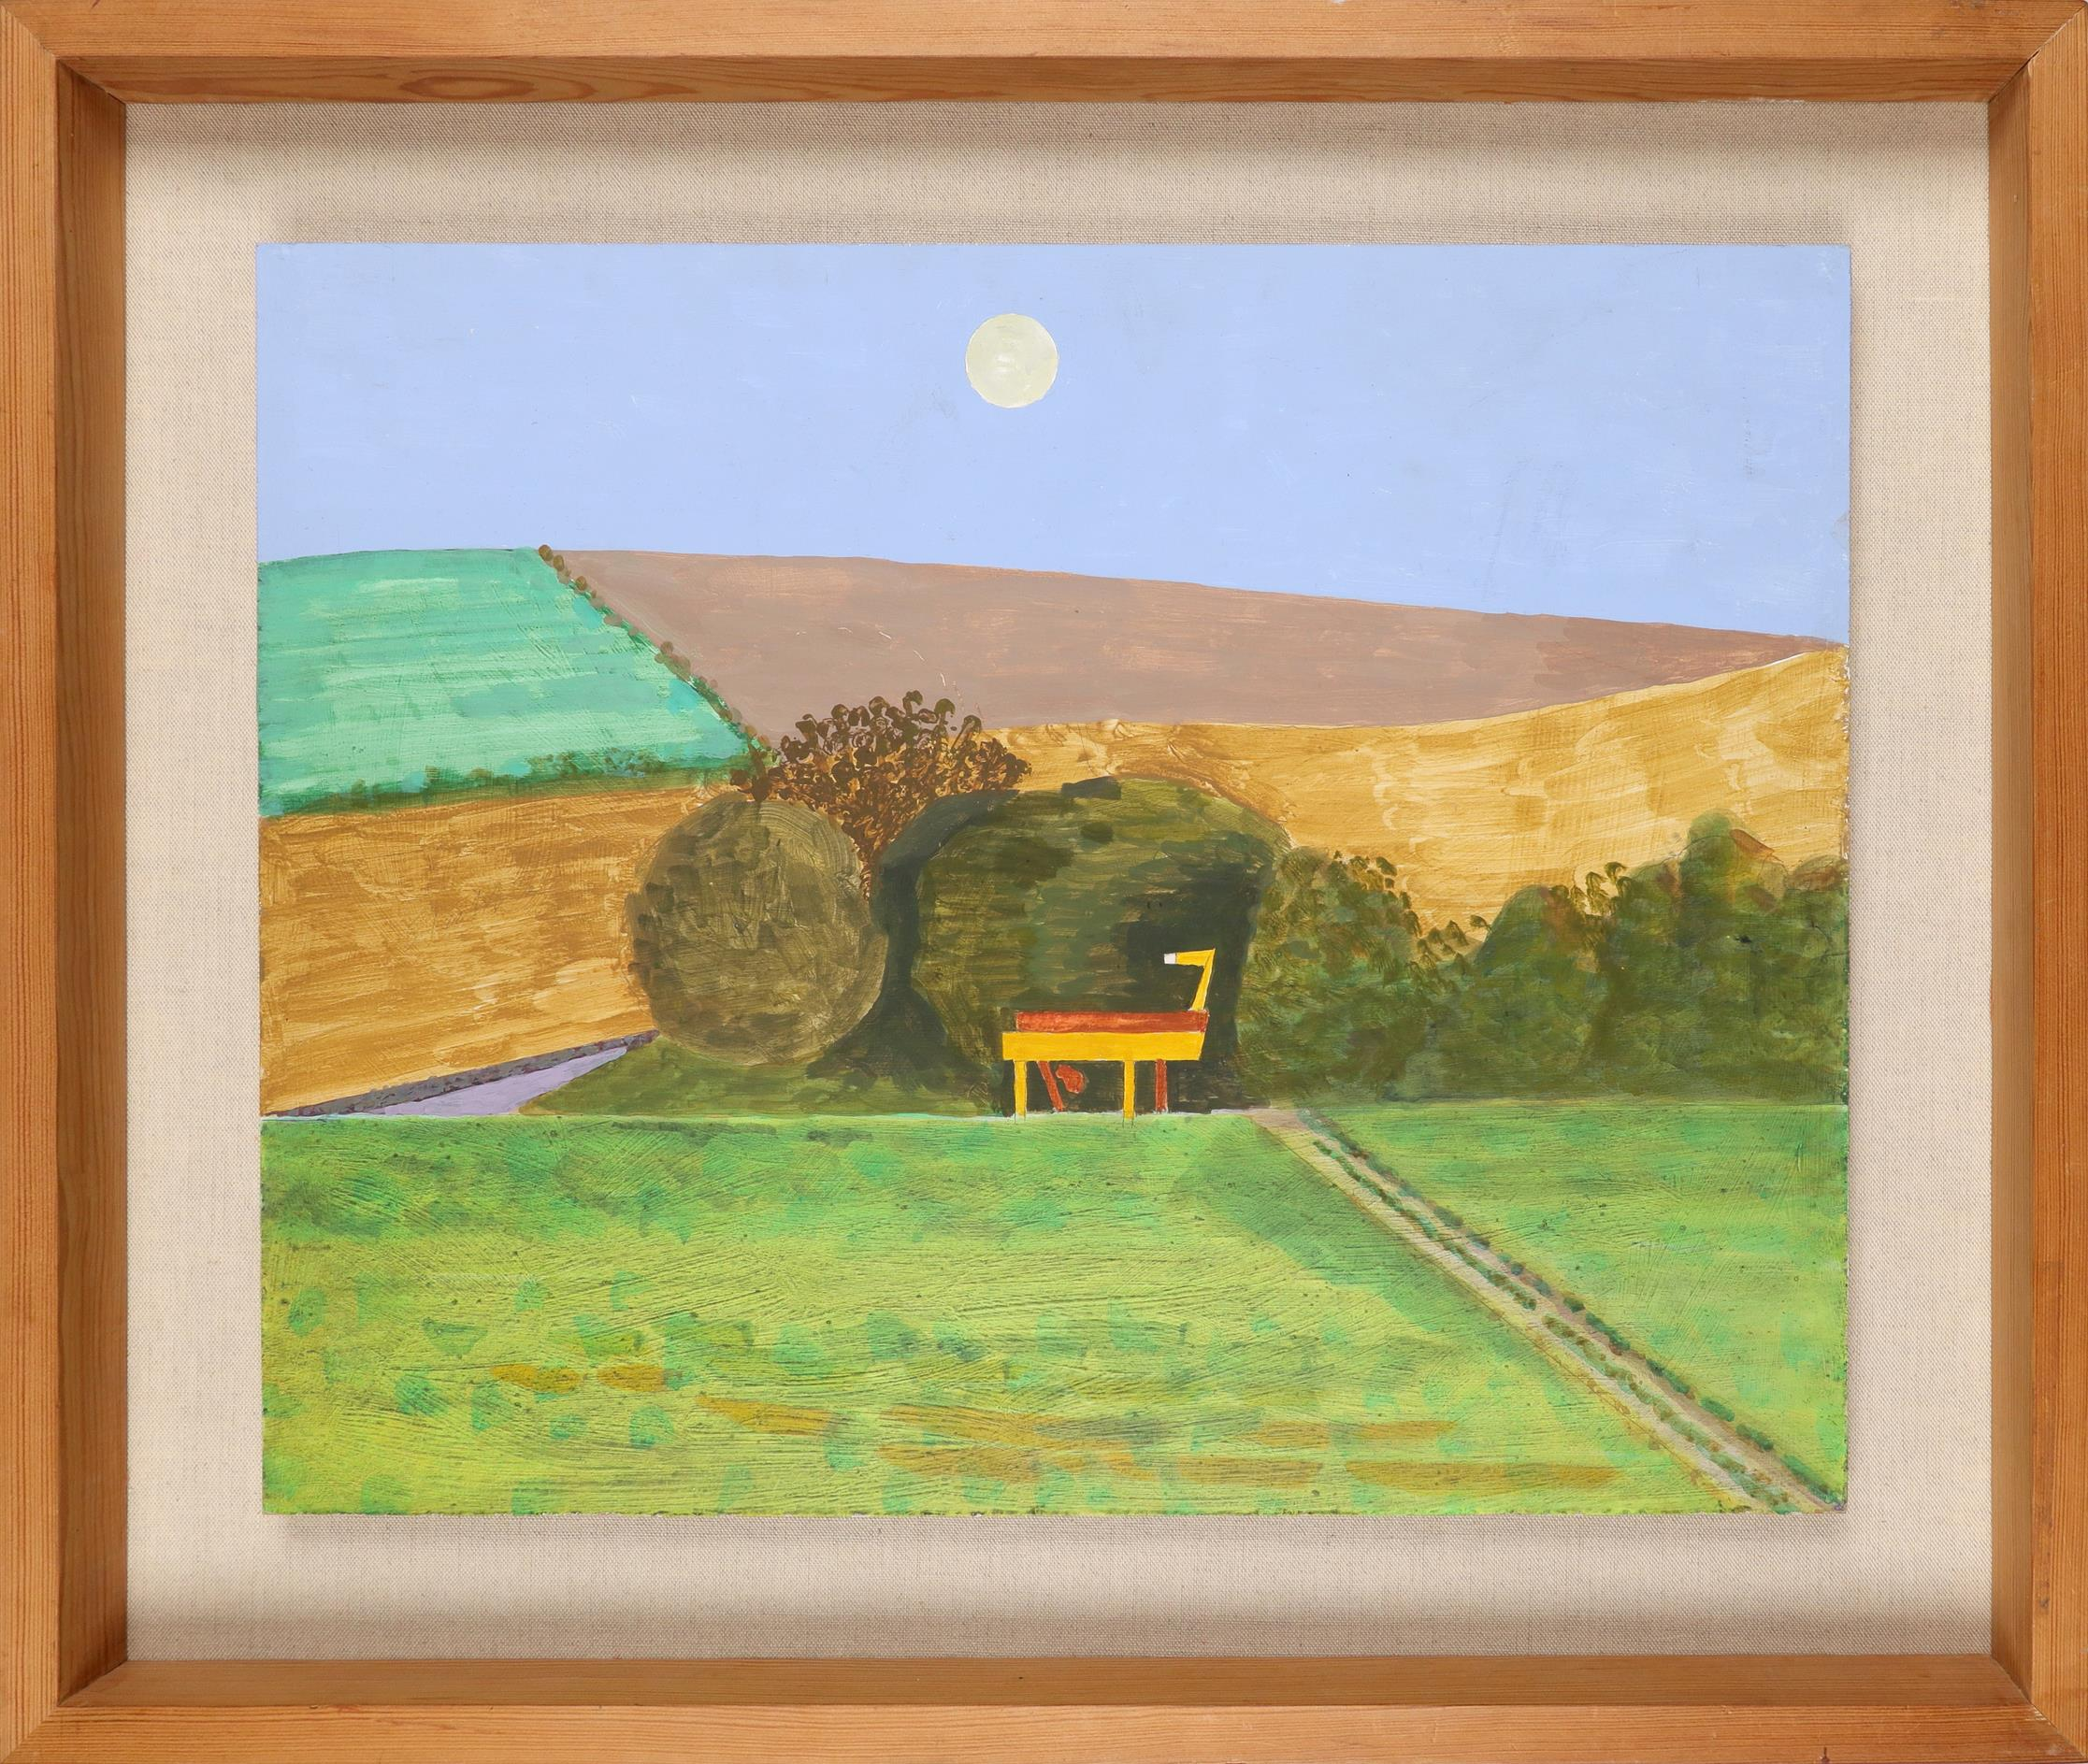 ‡Kenneth Rowntree (1915-1997) Landscape with threshing machine Oil on board 40.3 x 50.3cm - Image 2 of 3